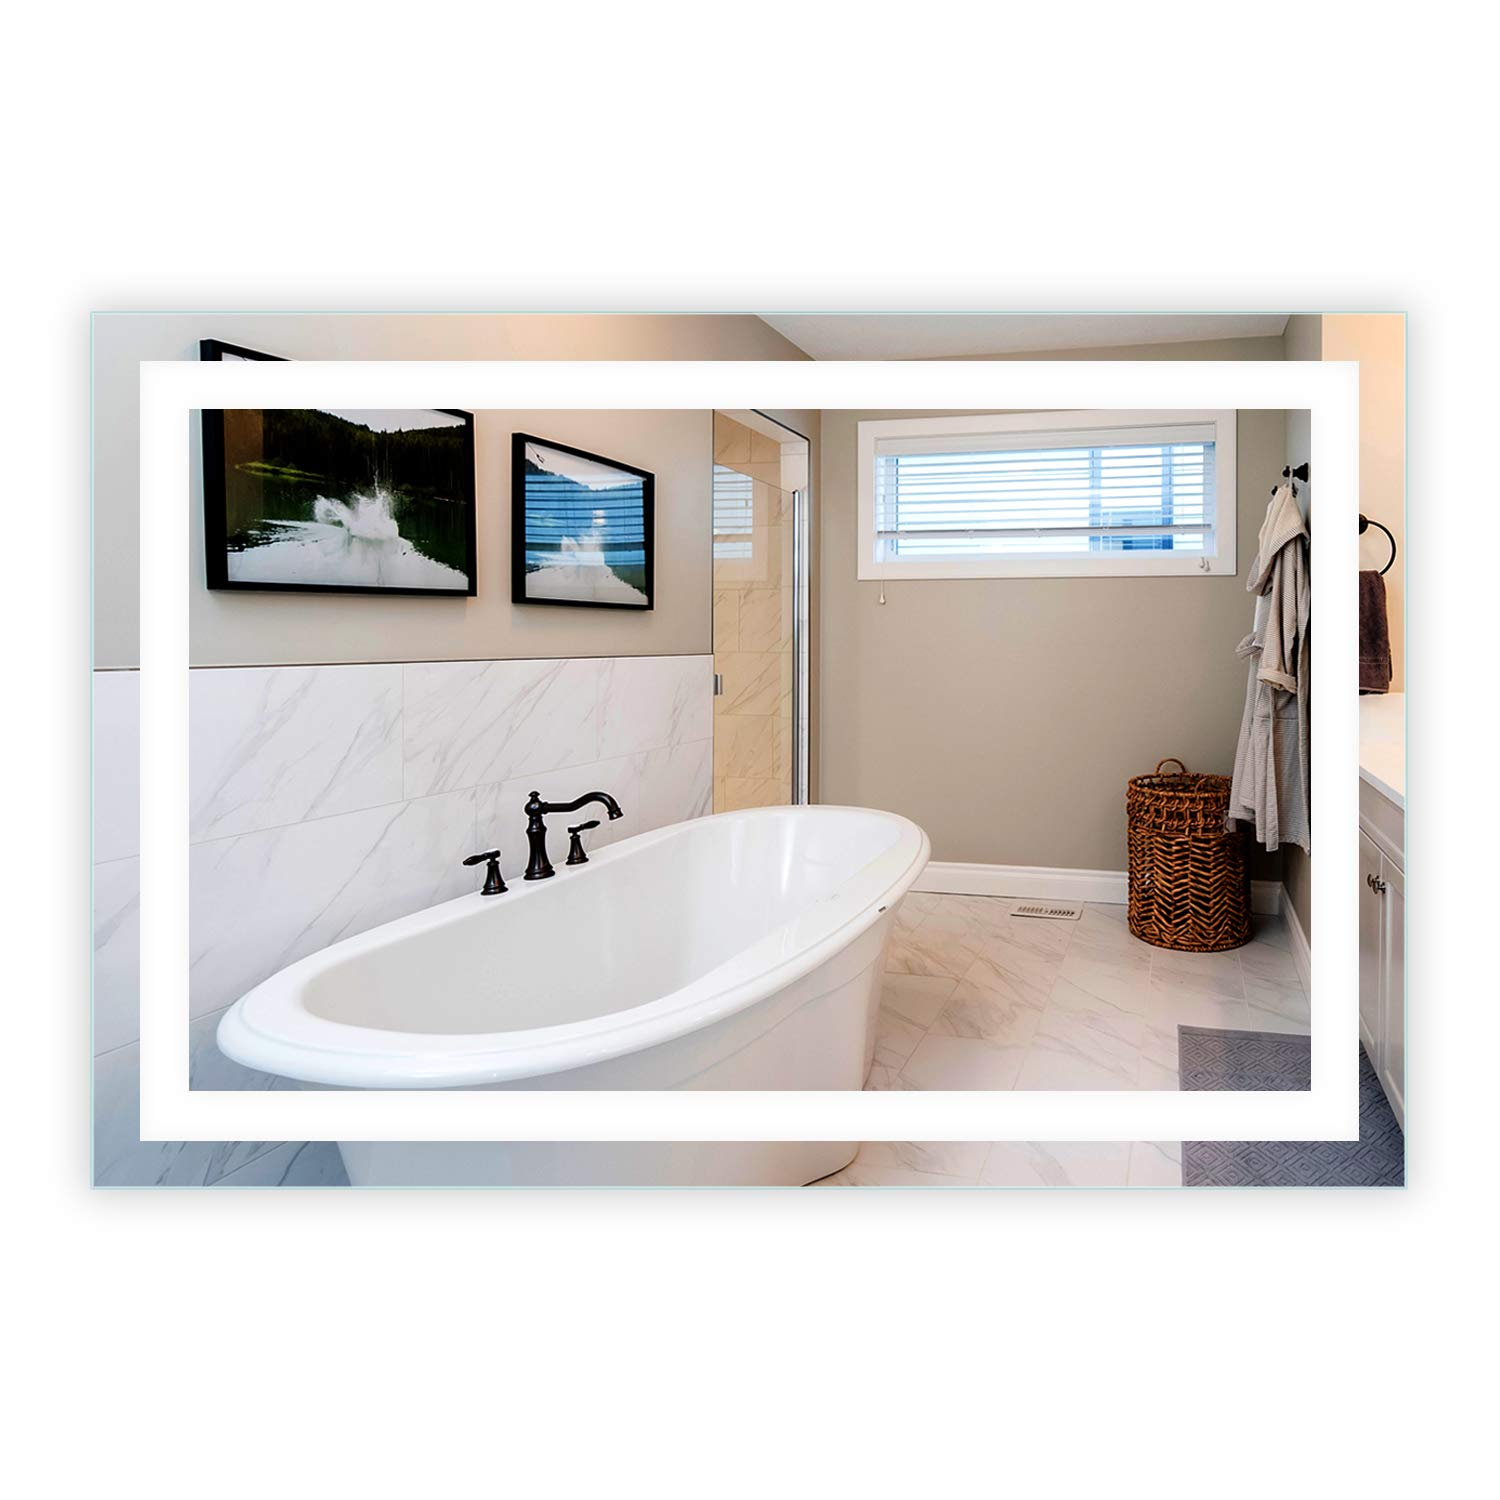 LED Front-Lighted Bathroom Vanity Mirror: 56'' Wide x 36'' Tall - Commercial Grade - Rectangular - Wall-Mounted by Mirrors and Marble